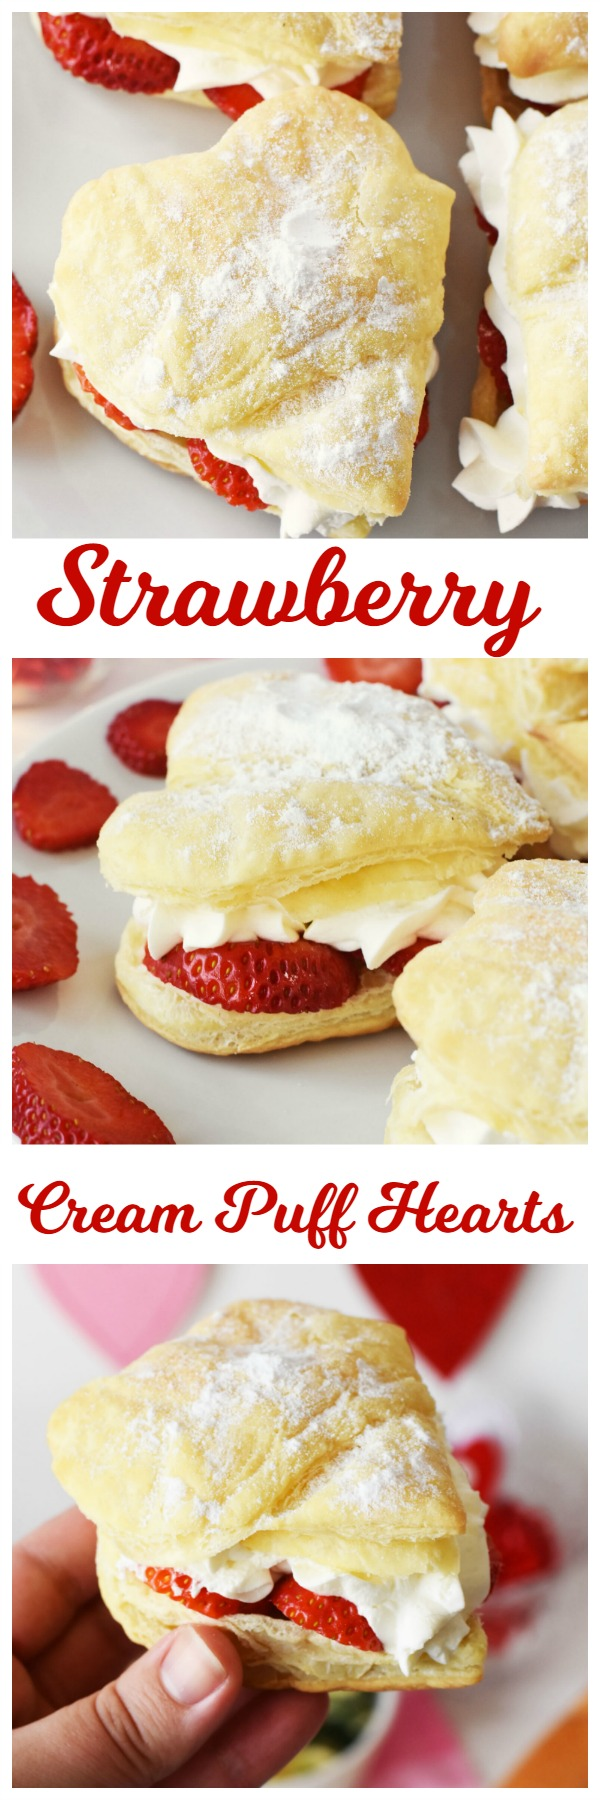 Strawberry Cream Puffs & Date Night in Ideas. Get this easy to make decadent strawberry cream dessert which features flaky puff pastry.